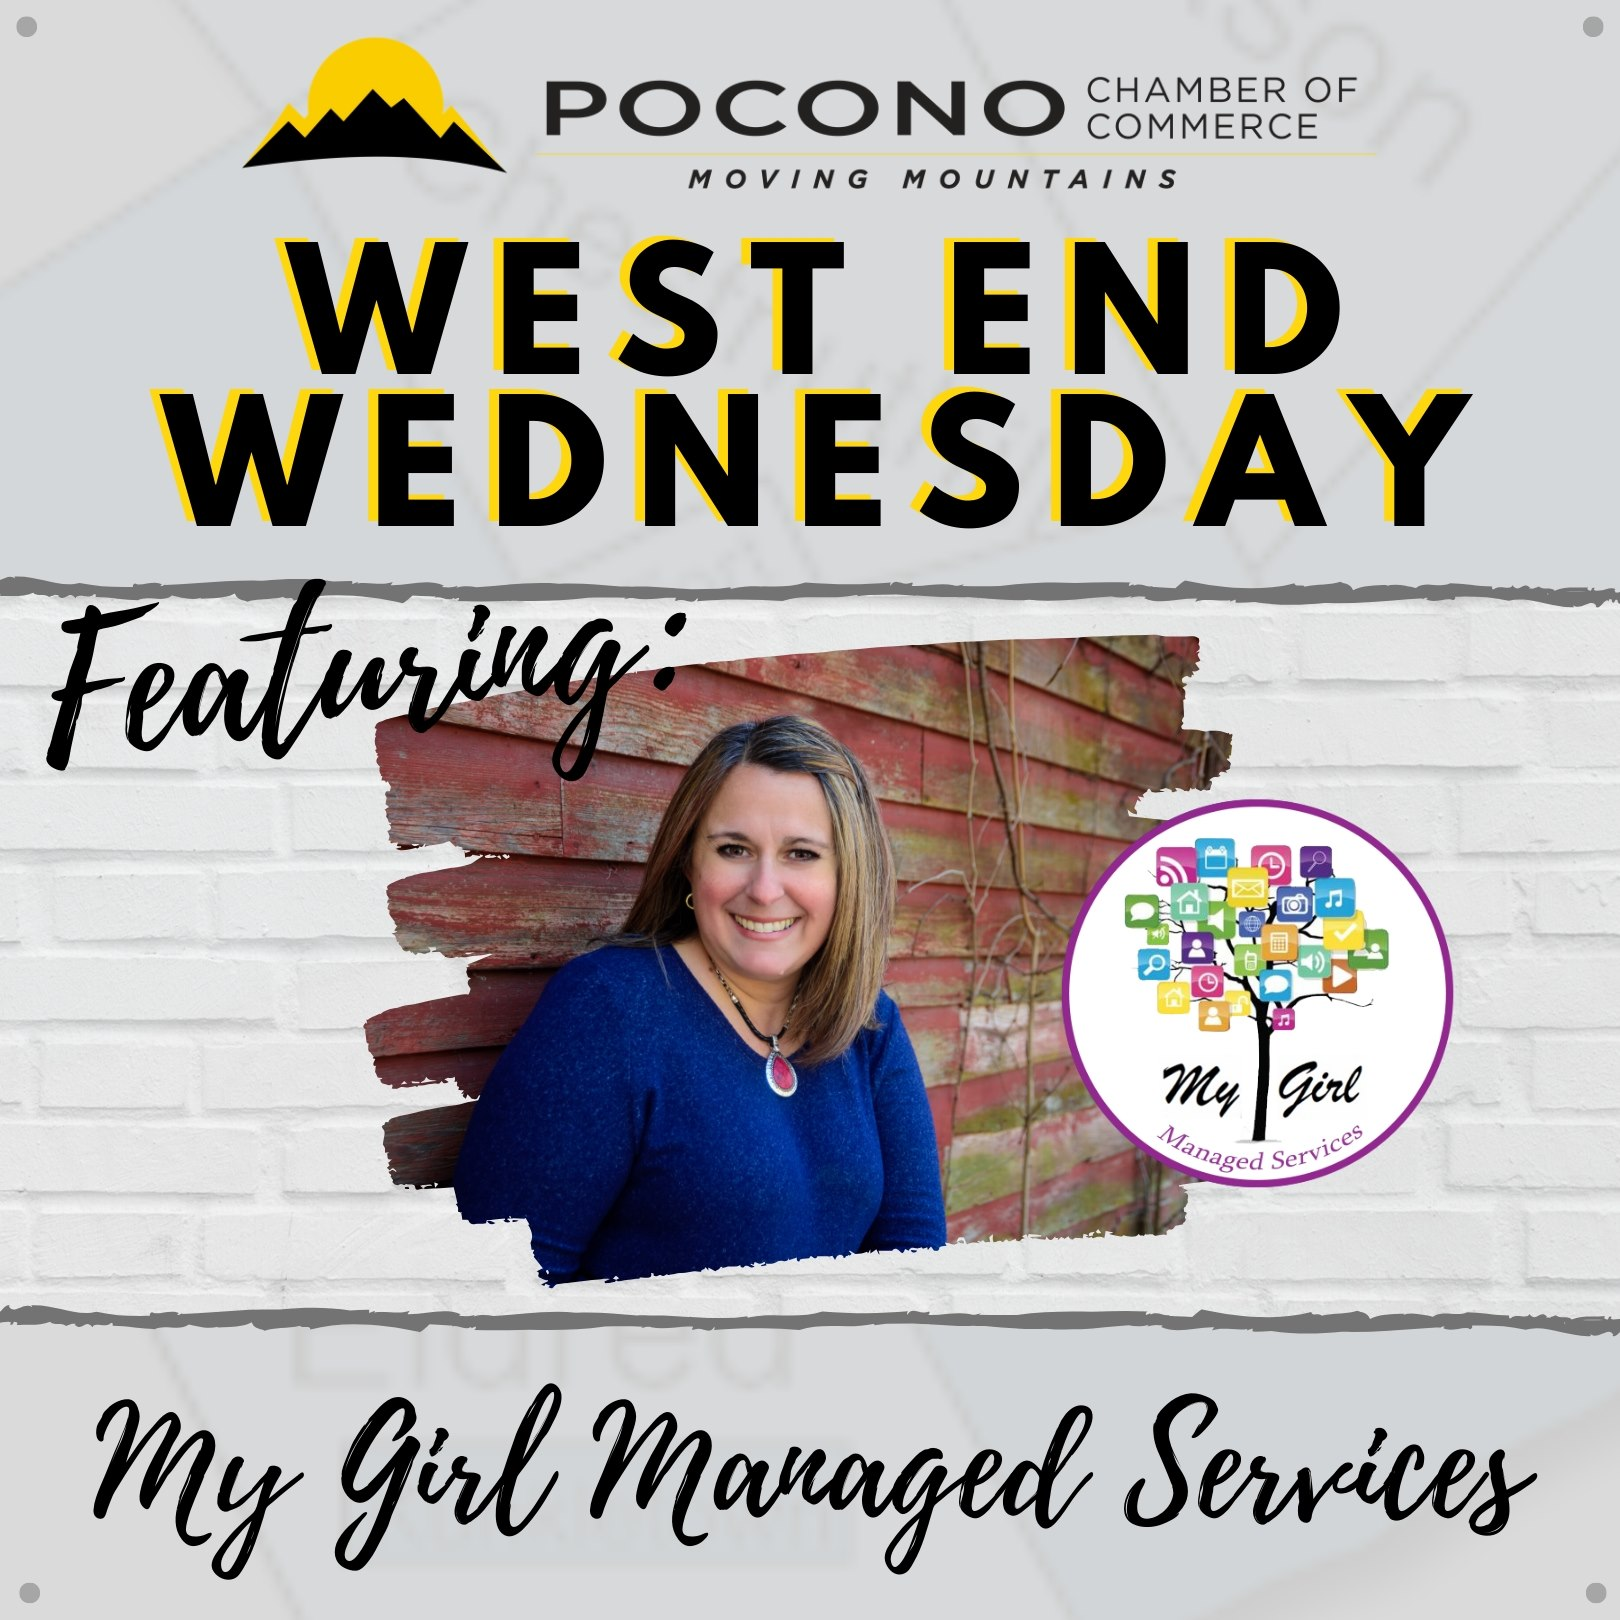 West End Wednesdays with the Pocono Chamber